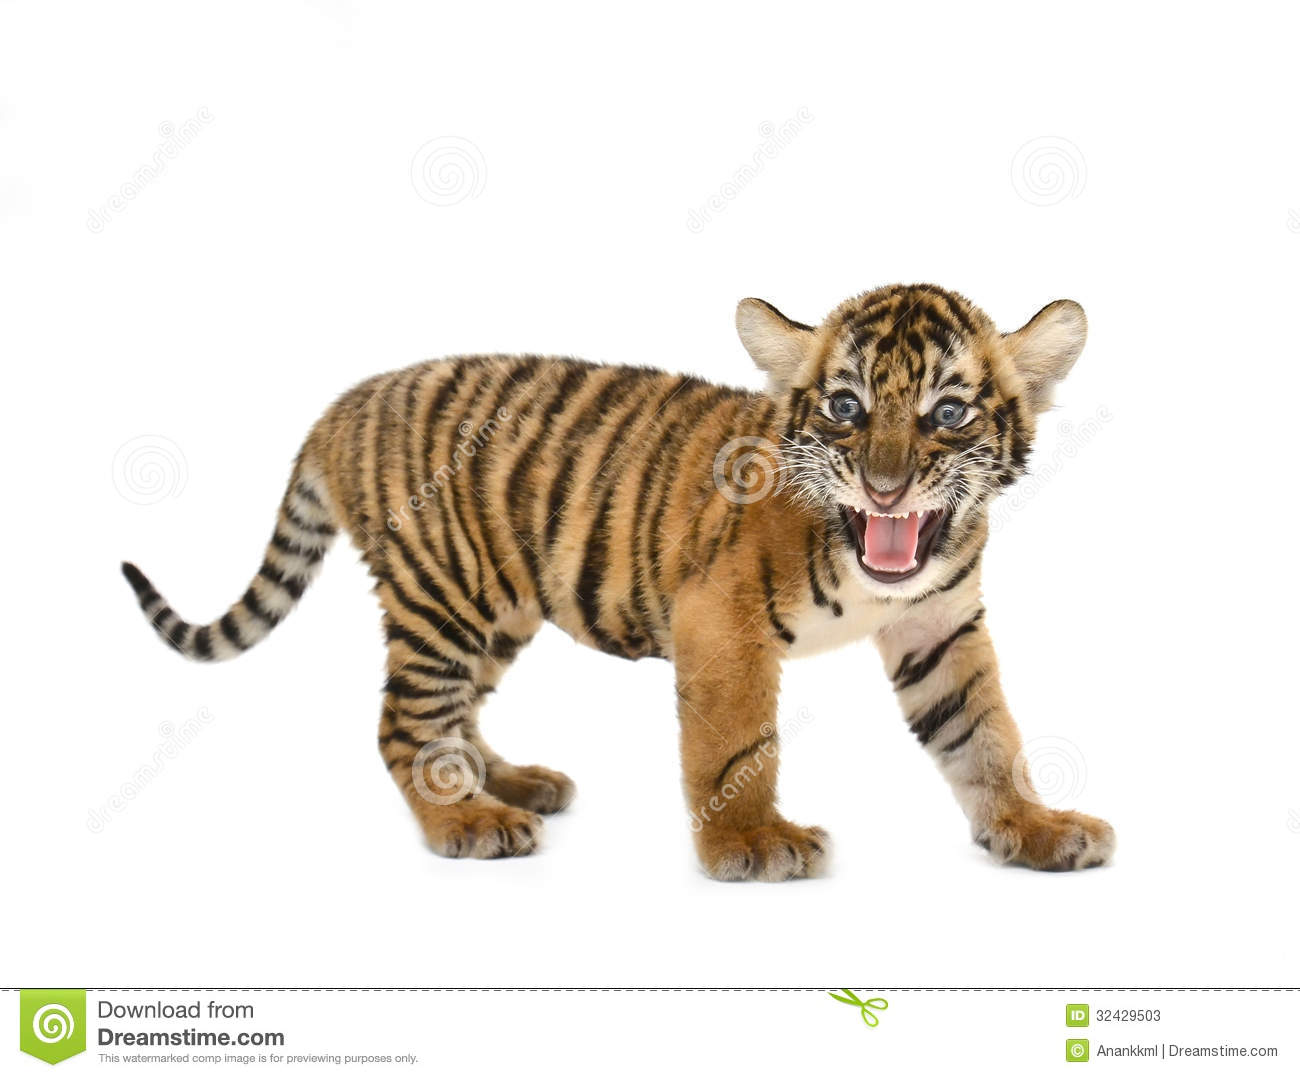 White Tiger clipart bengal tiger Fans bengal #76 #25 69